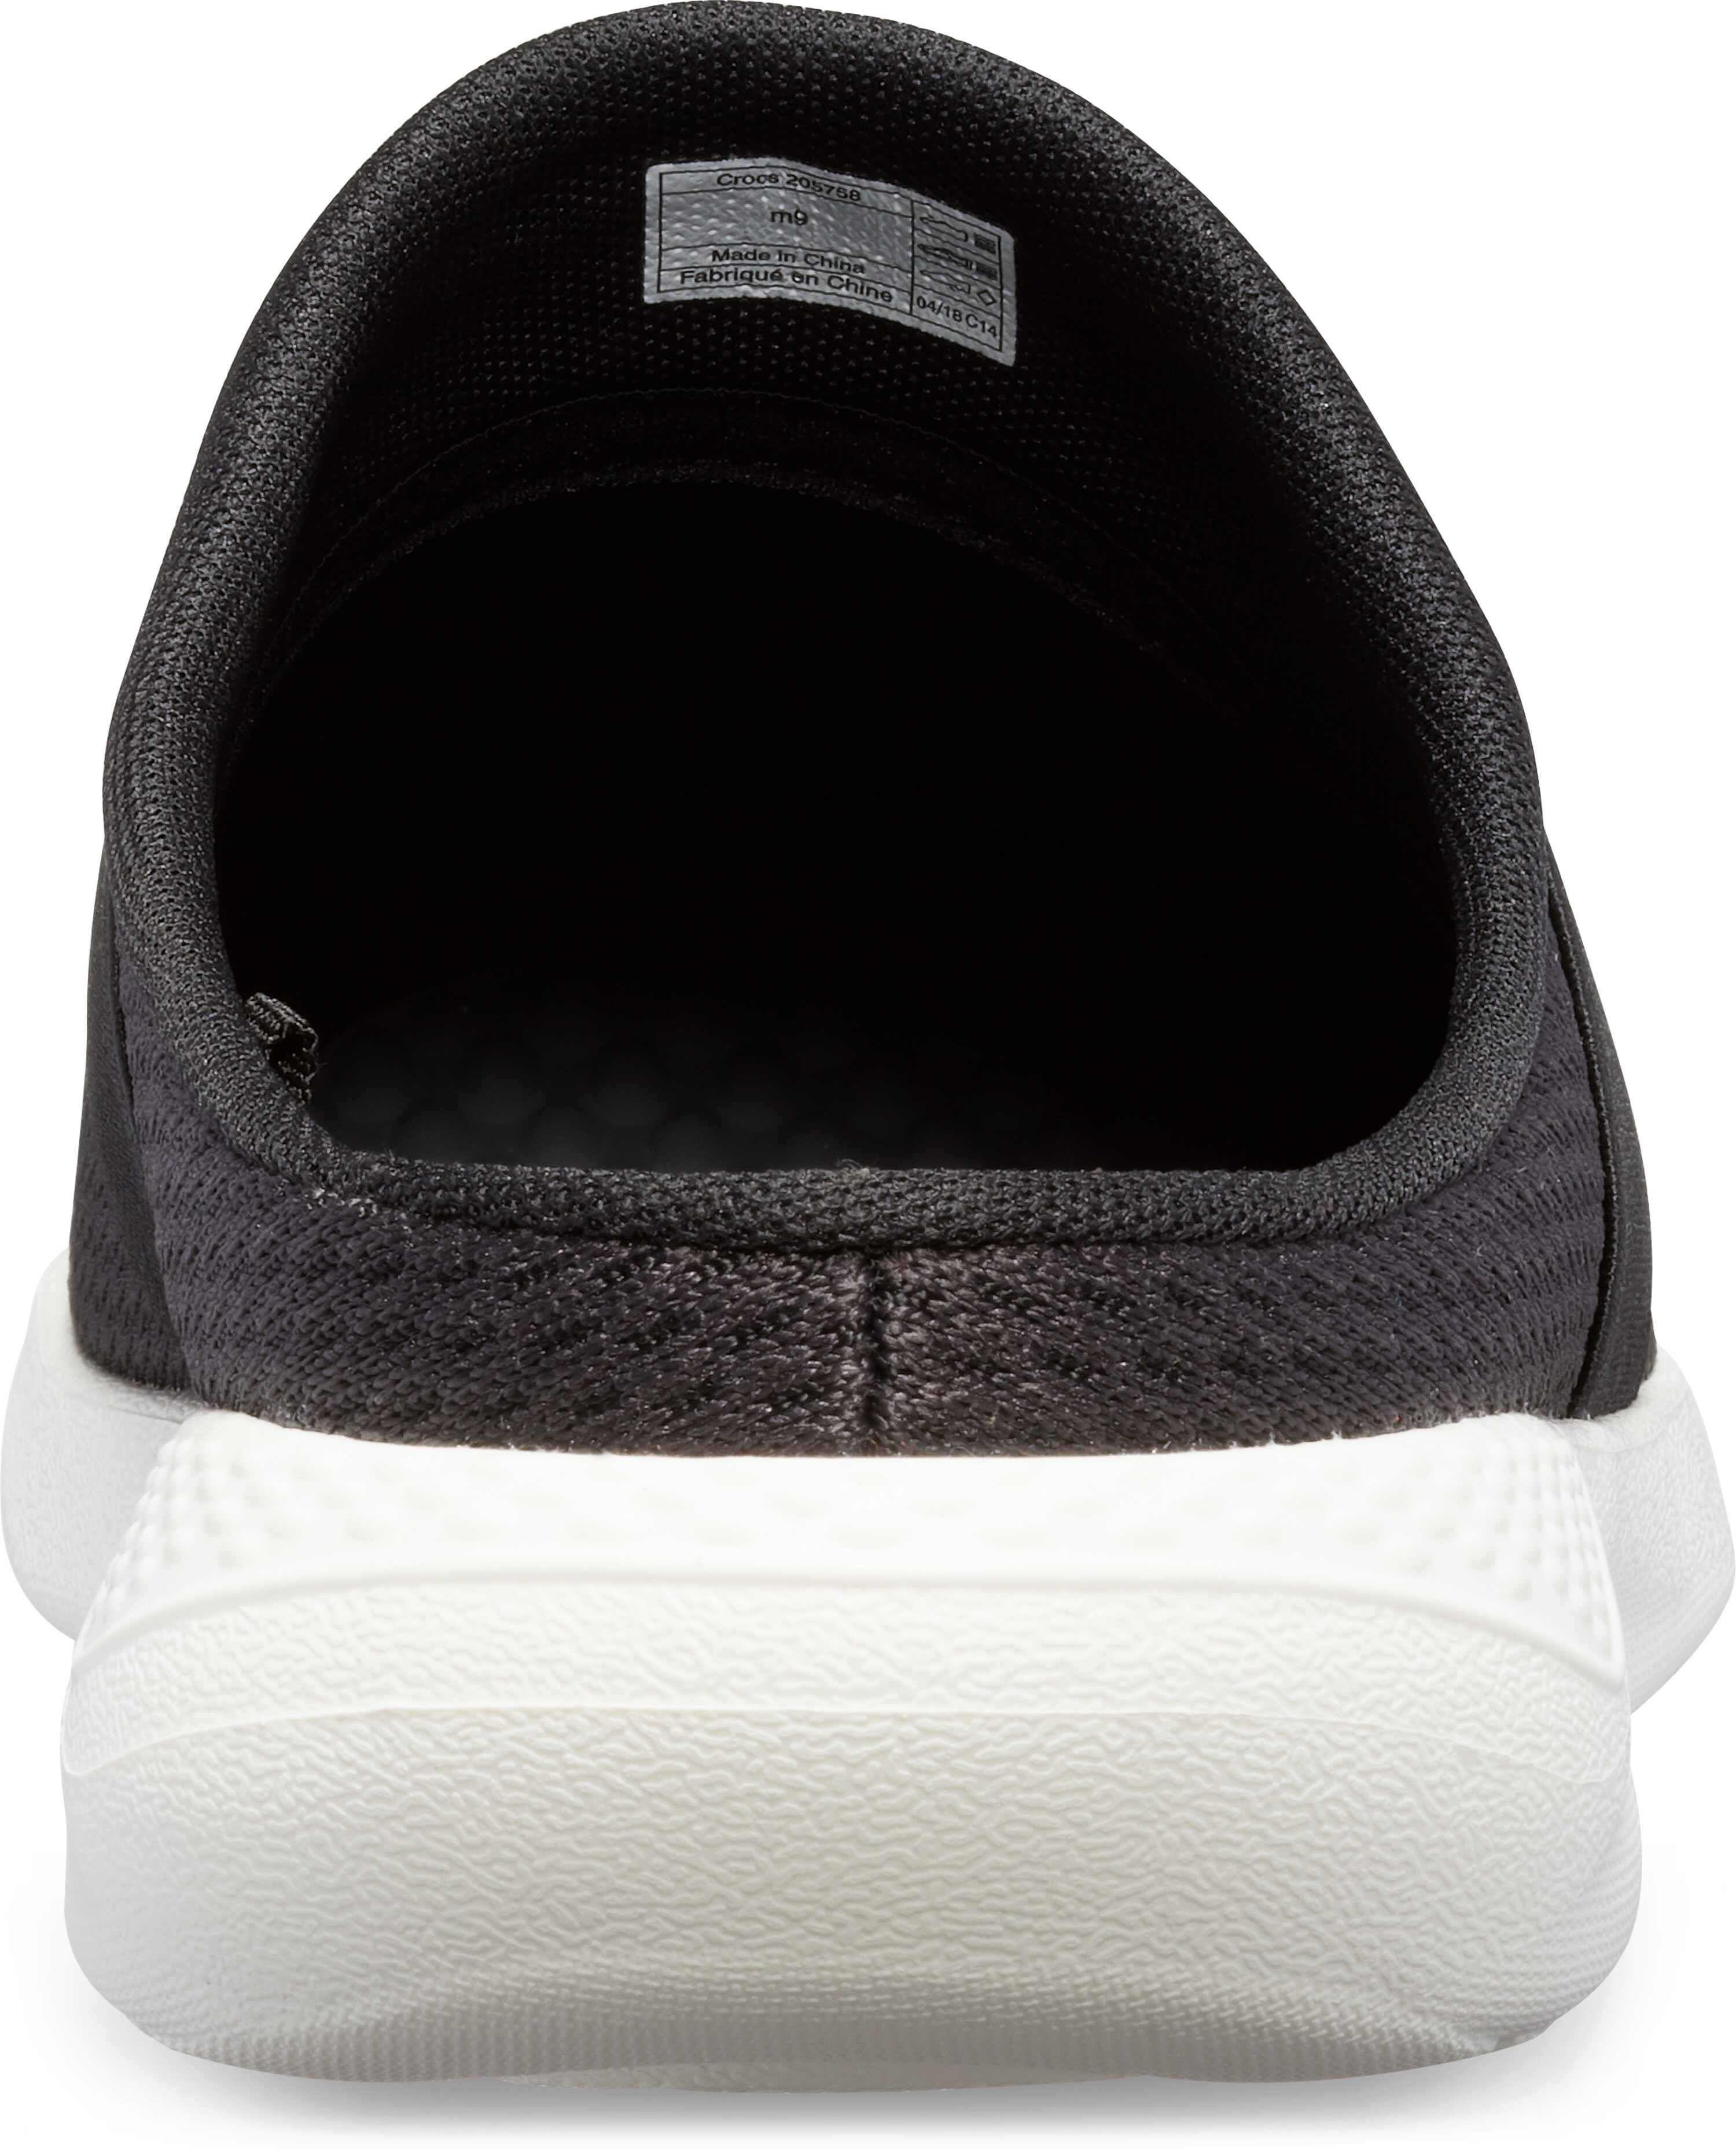 a432a9fe66a5 Crocs LiteRide Mesh Mules Men black white at Addnature.co.uk